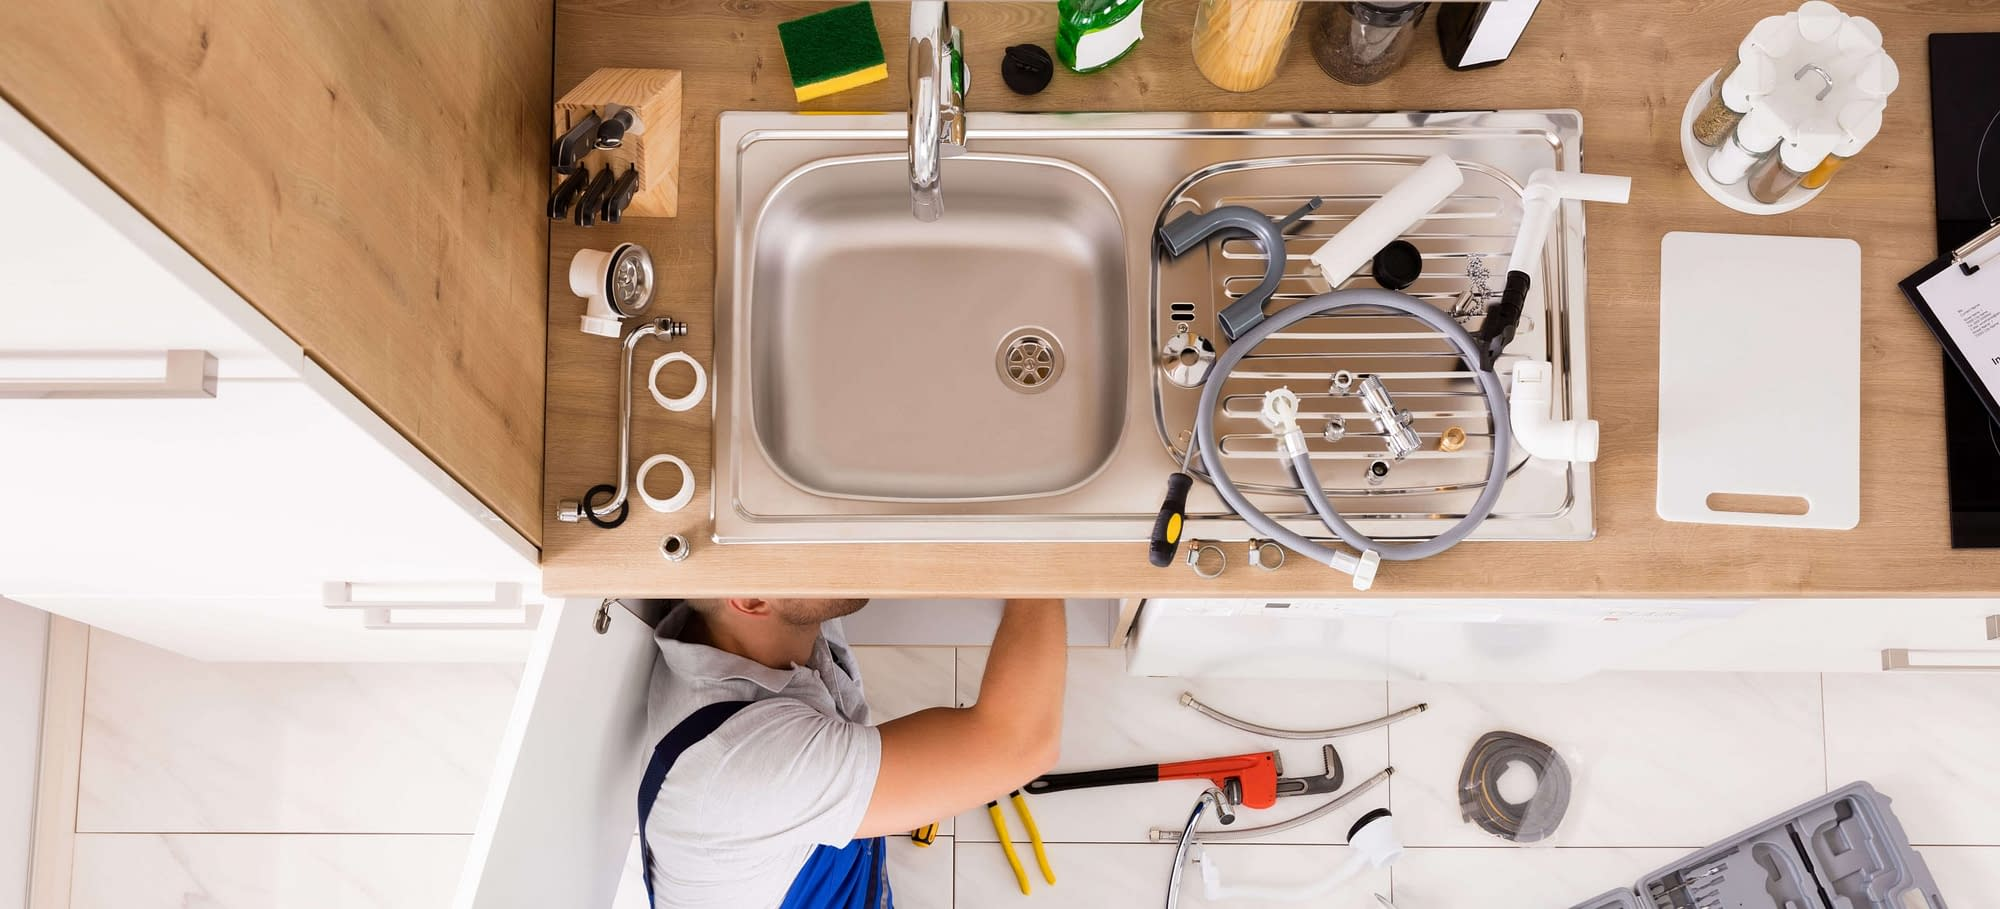 Plumb a Kitchen Sink With Disposal and Dishwasher 1